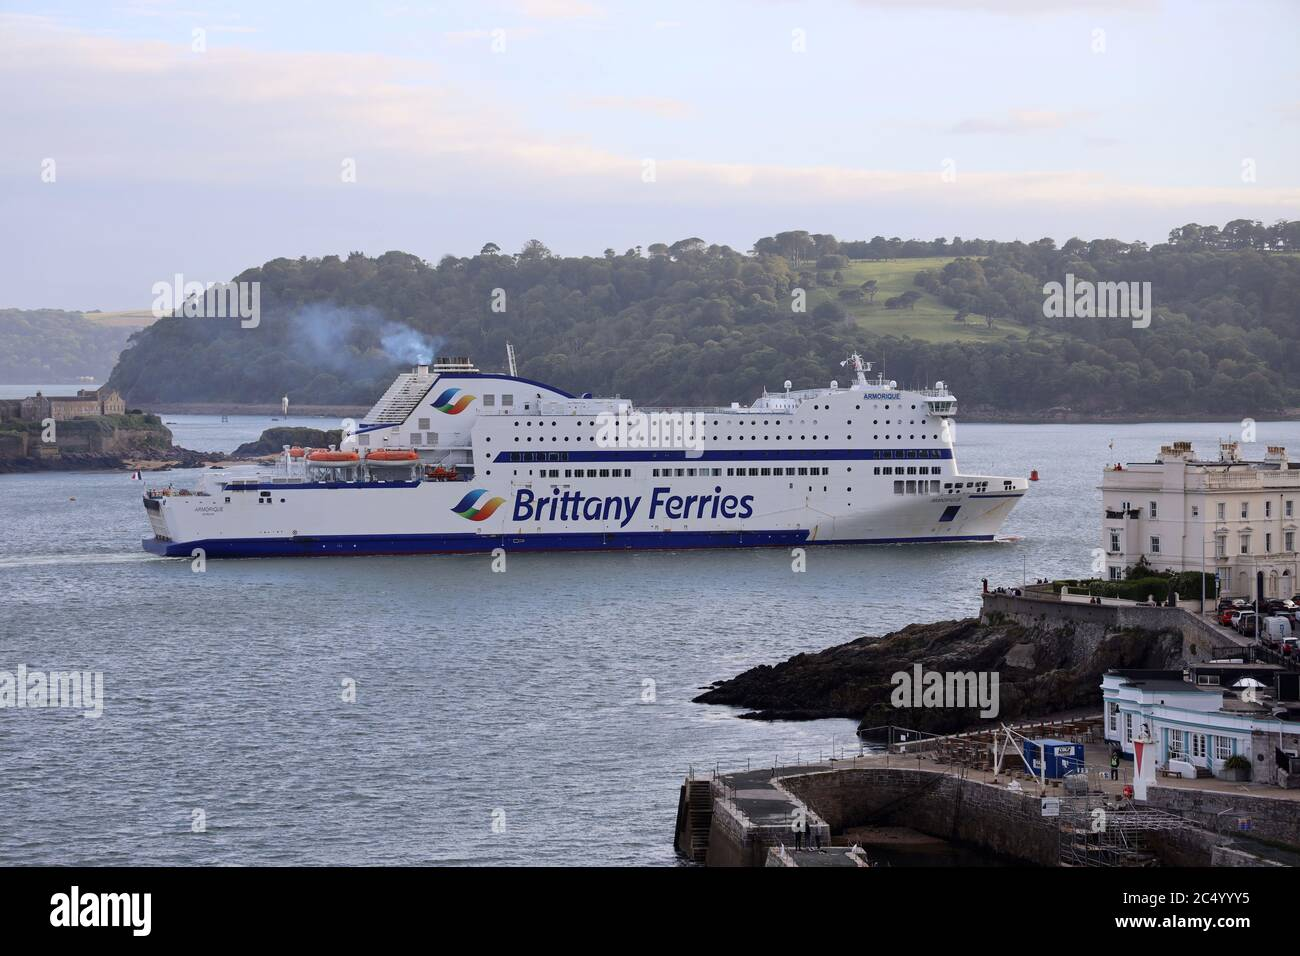 "Plymouth, UK. 29th July, 2020. Brittany Ferries ""Armorique"" returns to Plymouth for the first time since March, when sailings were cancelled due to Coronavirus. The ship is scheduled to make its first return sailing from Plymouth to Roscoff, France, at 22:00 tonight. Credit: Julian Kemp/Alamy Live News Stock Photo"